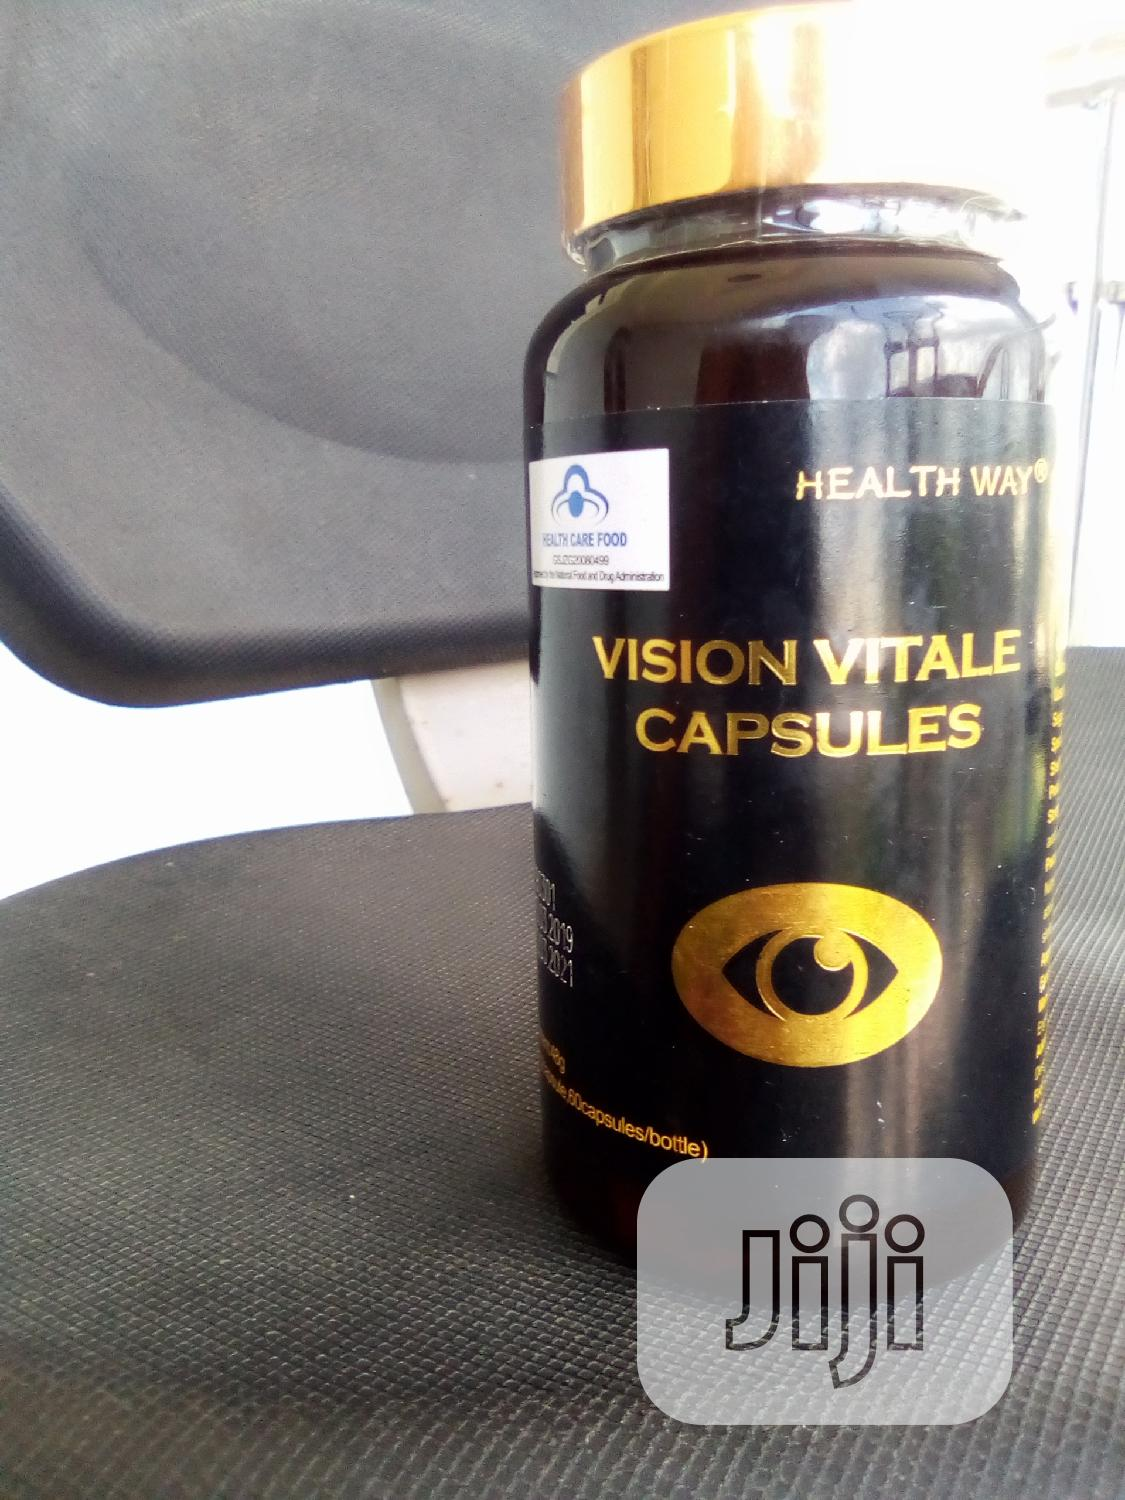 Vision Vitale Capsules- Effective Cure for Cataracts and Myopia